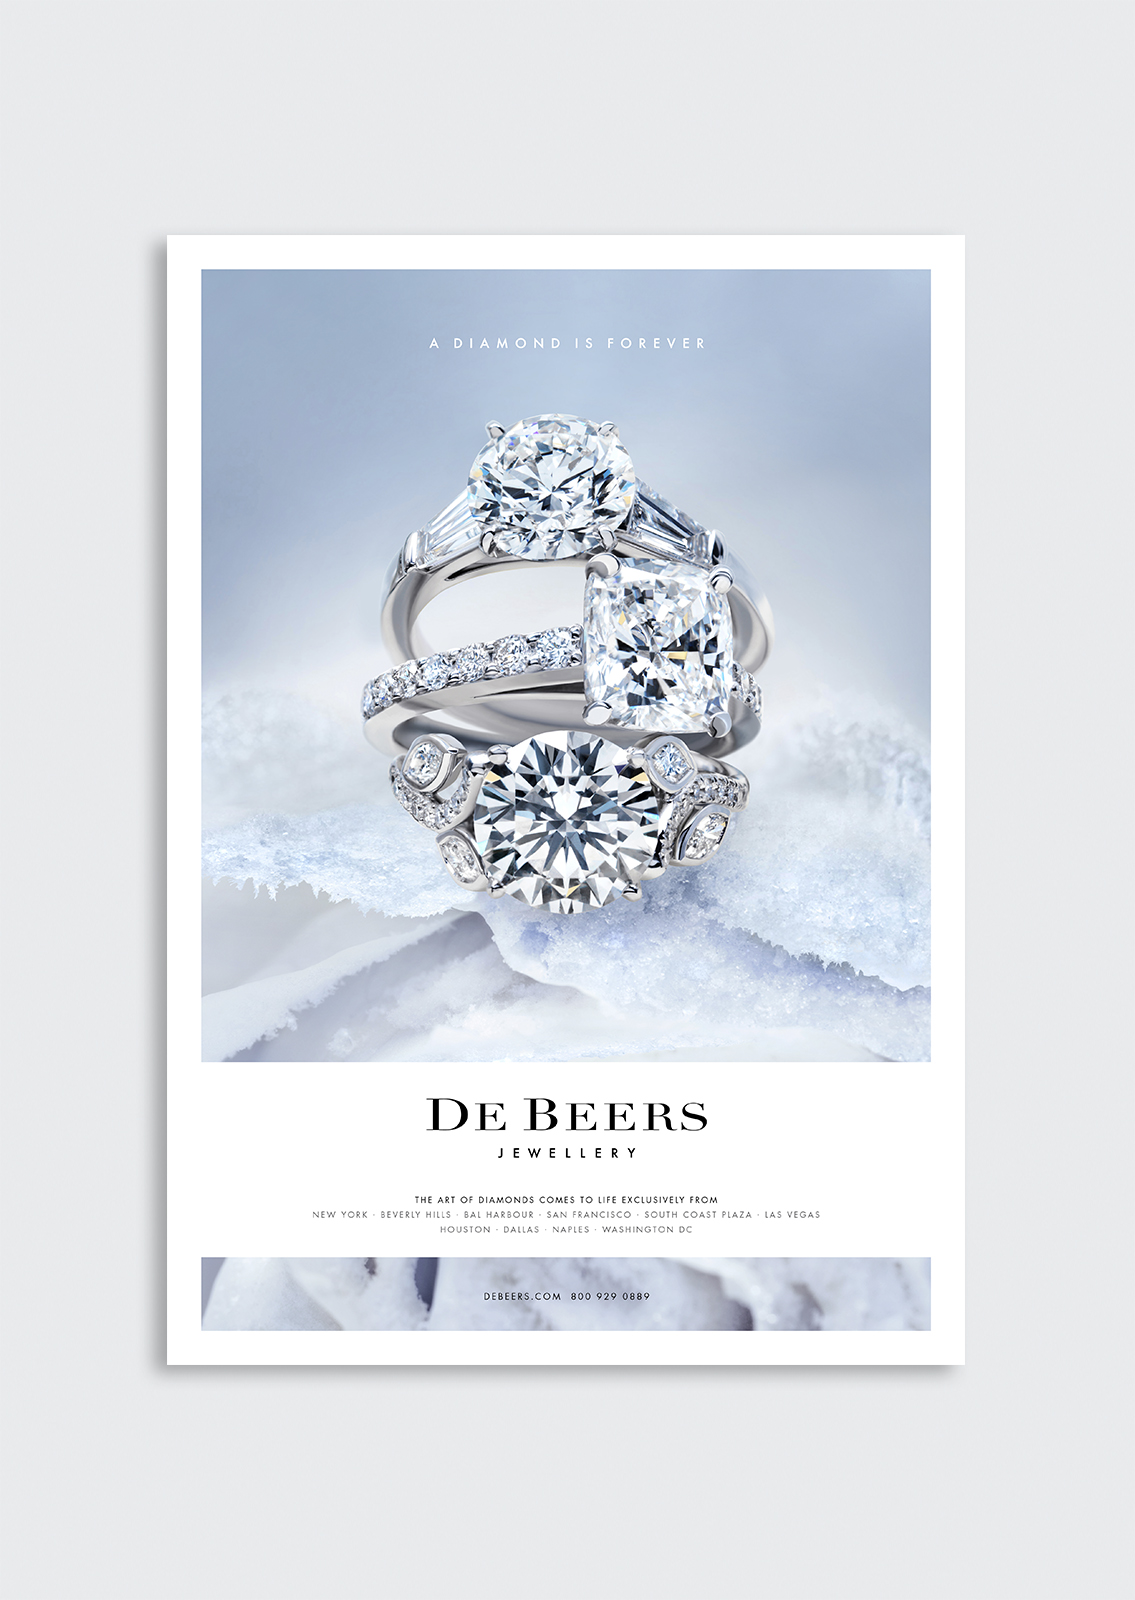 De Beers ADS 1 Grey.jpg